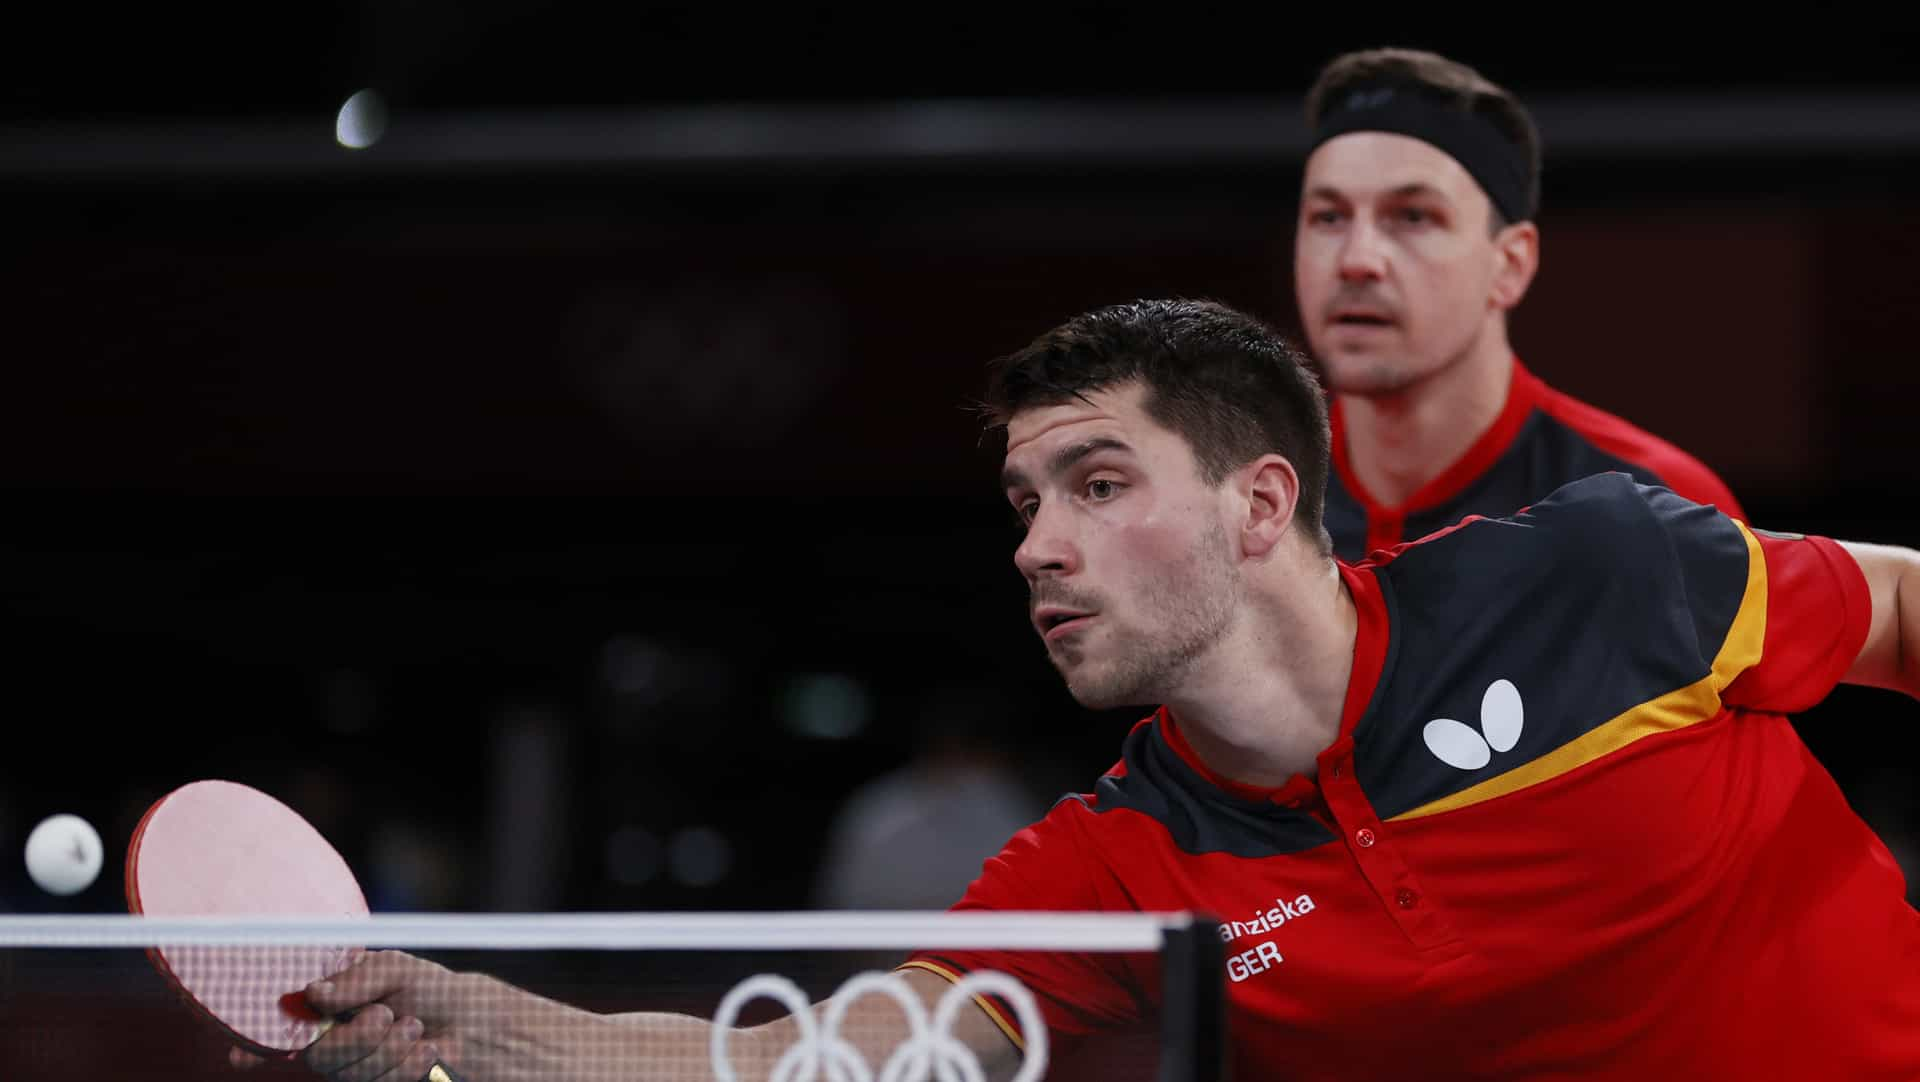 Dimitrij Ovtcharov (front) and Timo Boll (back) play for Germany in the Olympic team table...